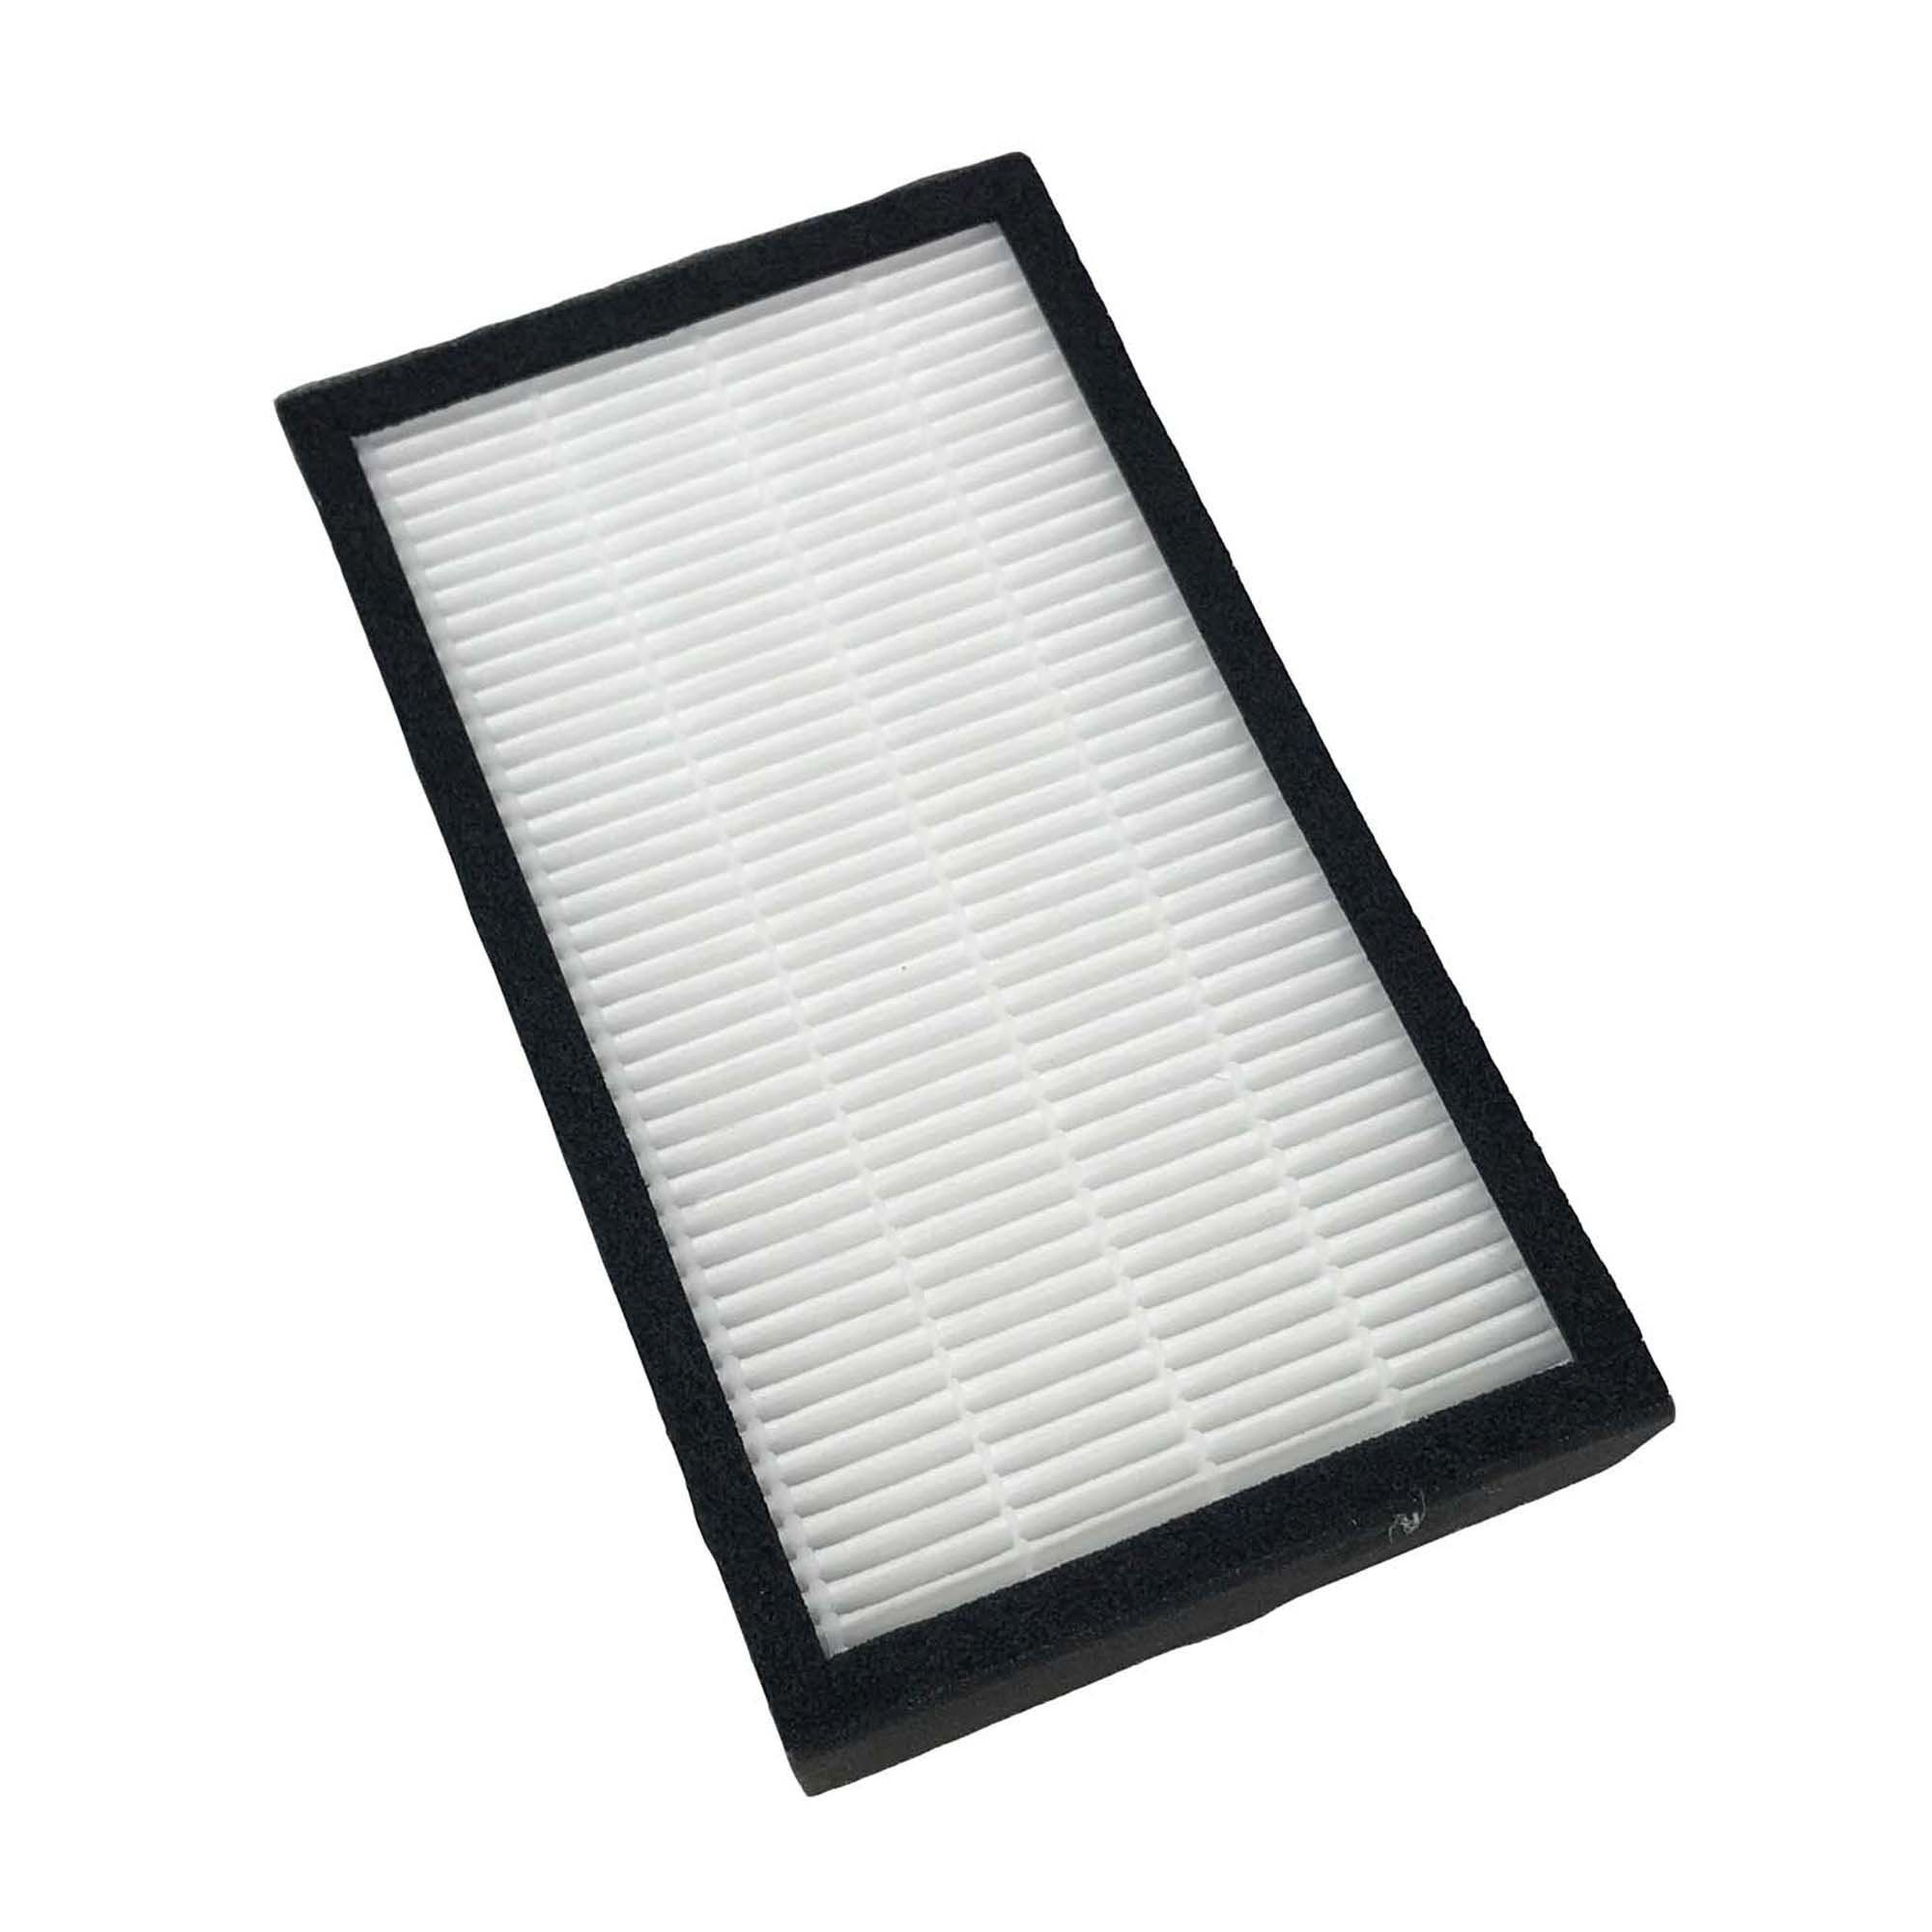 Replacement E Air Purifier Filter, Fits GermGuardian